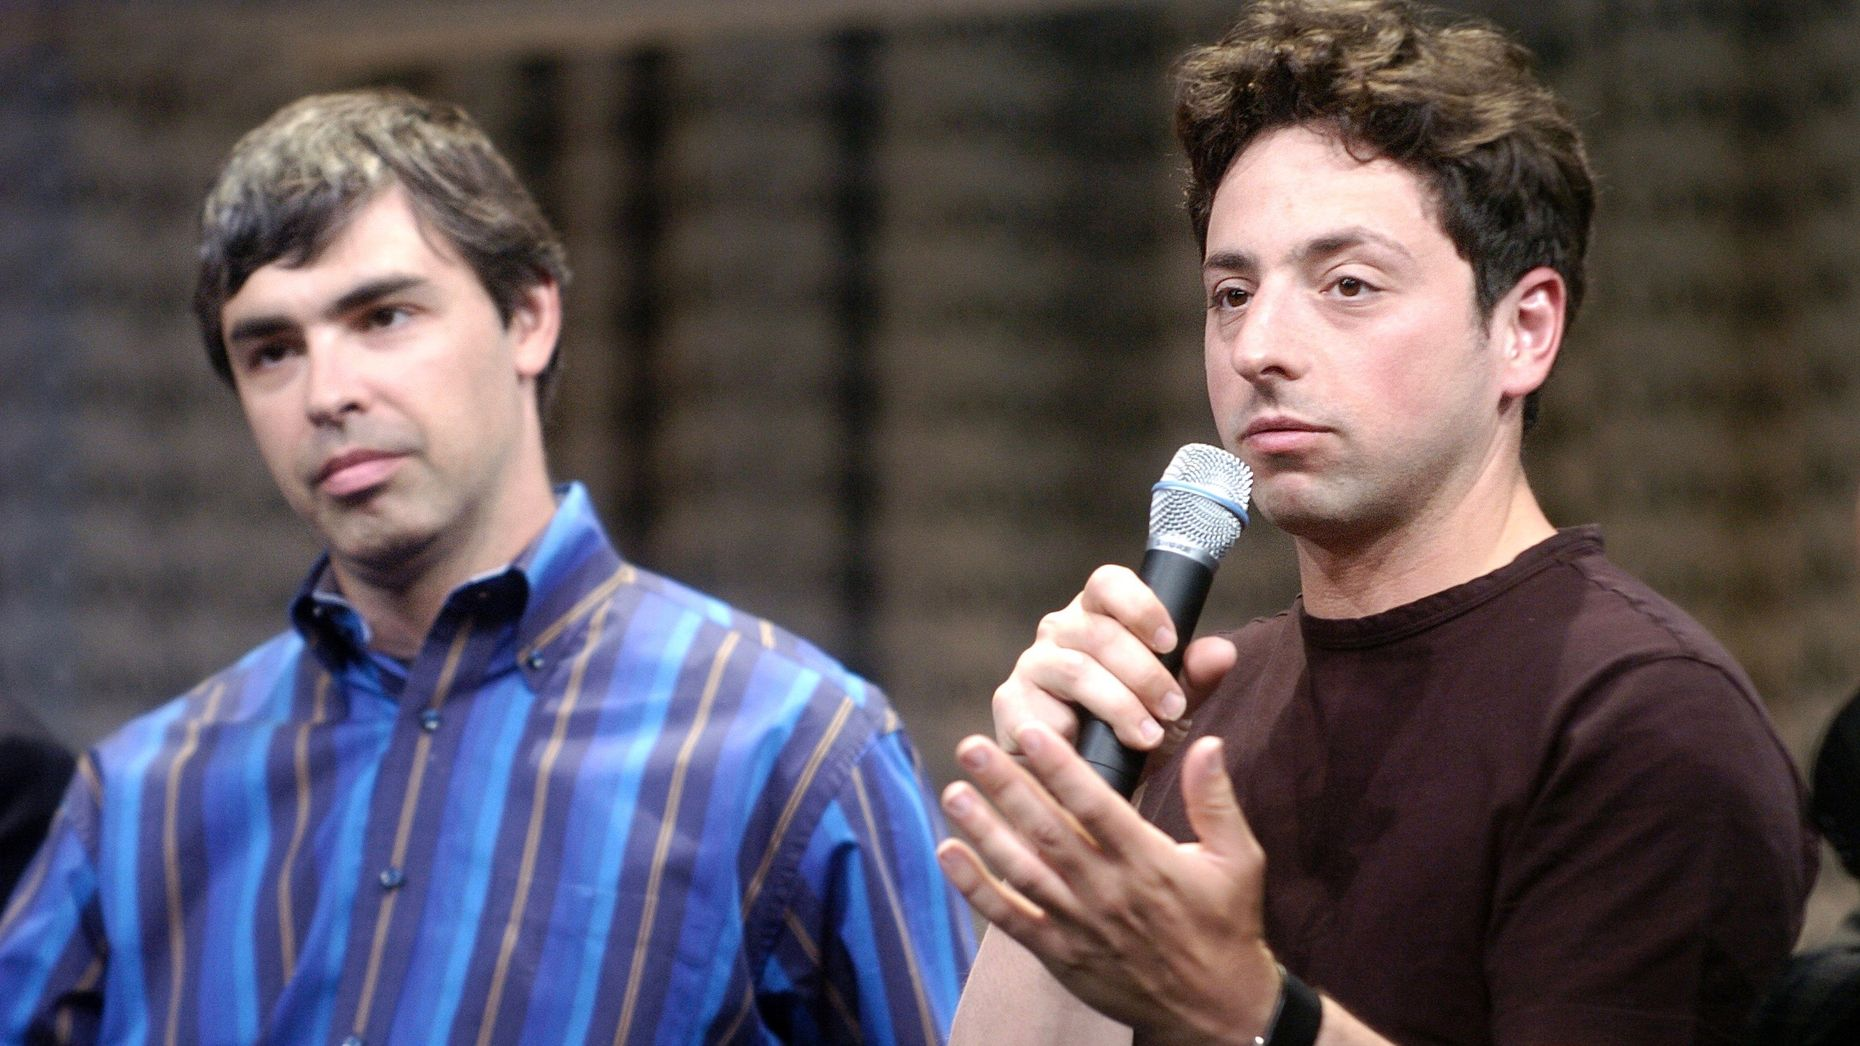 Google co-founders Larry Page and Sergey Brin. Photo by AP.